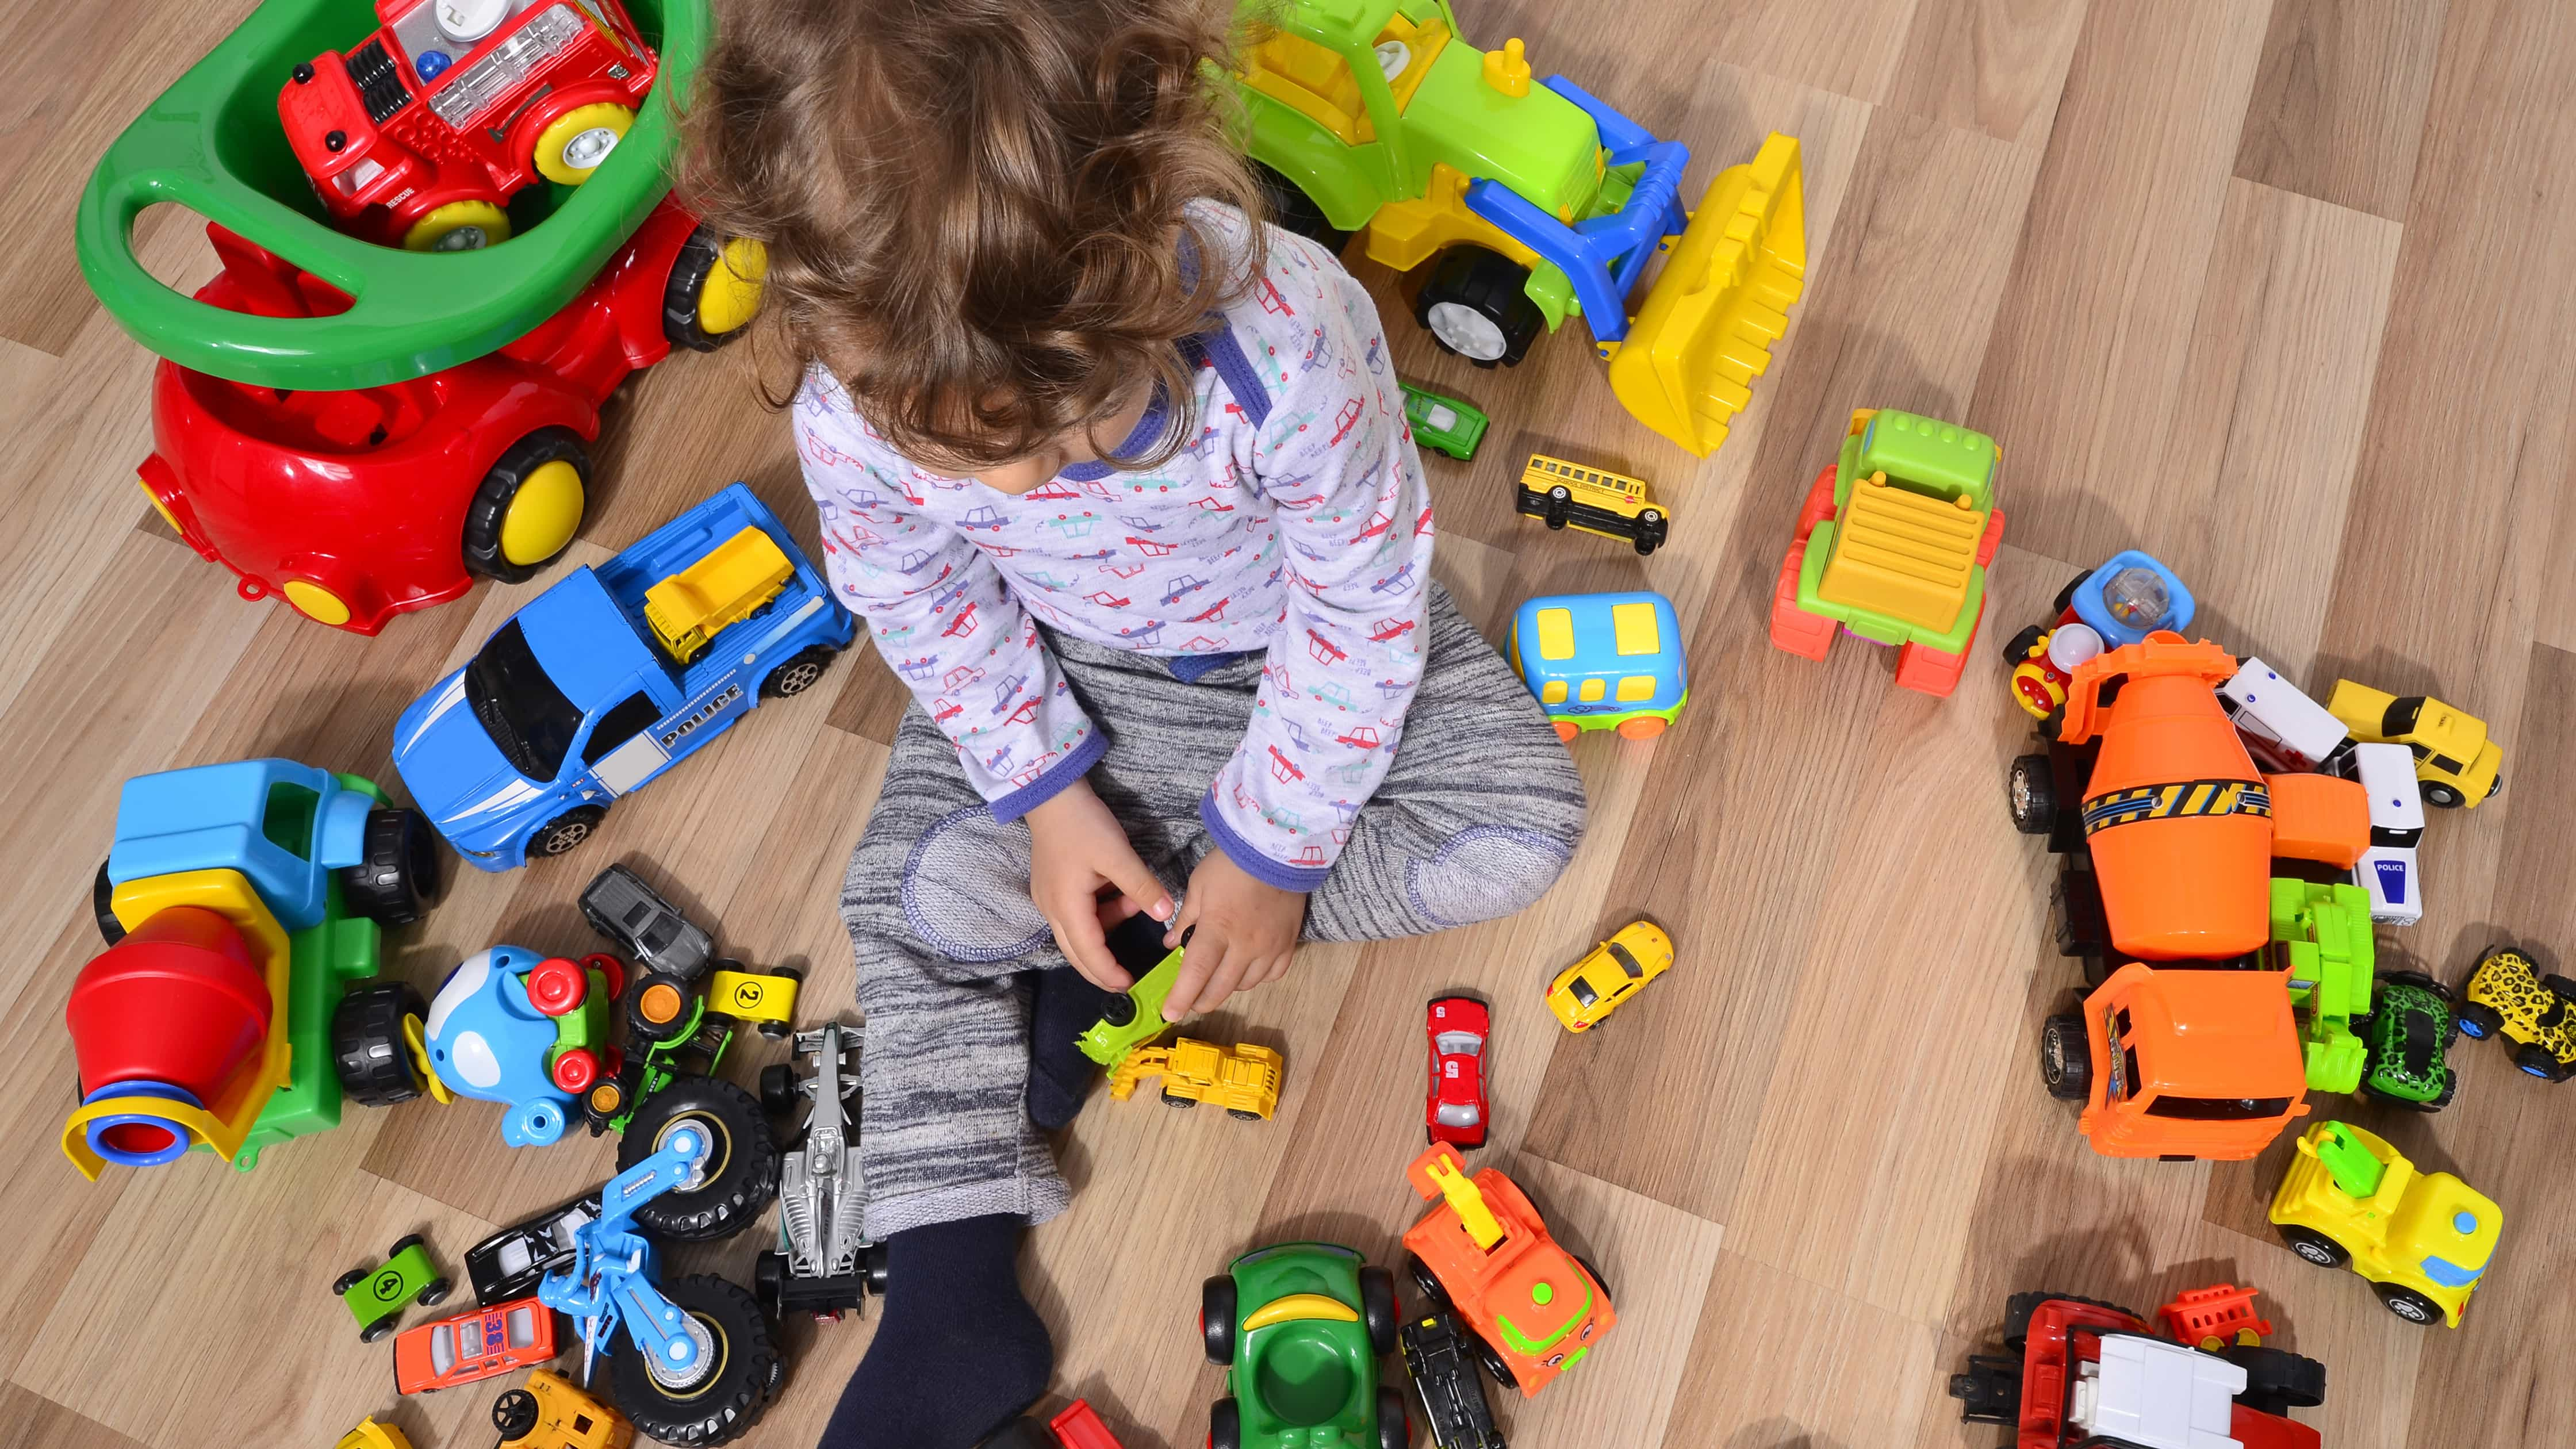 Messy Children quick house sale impossible